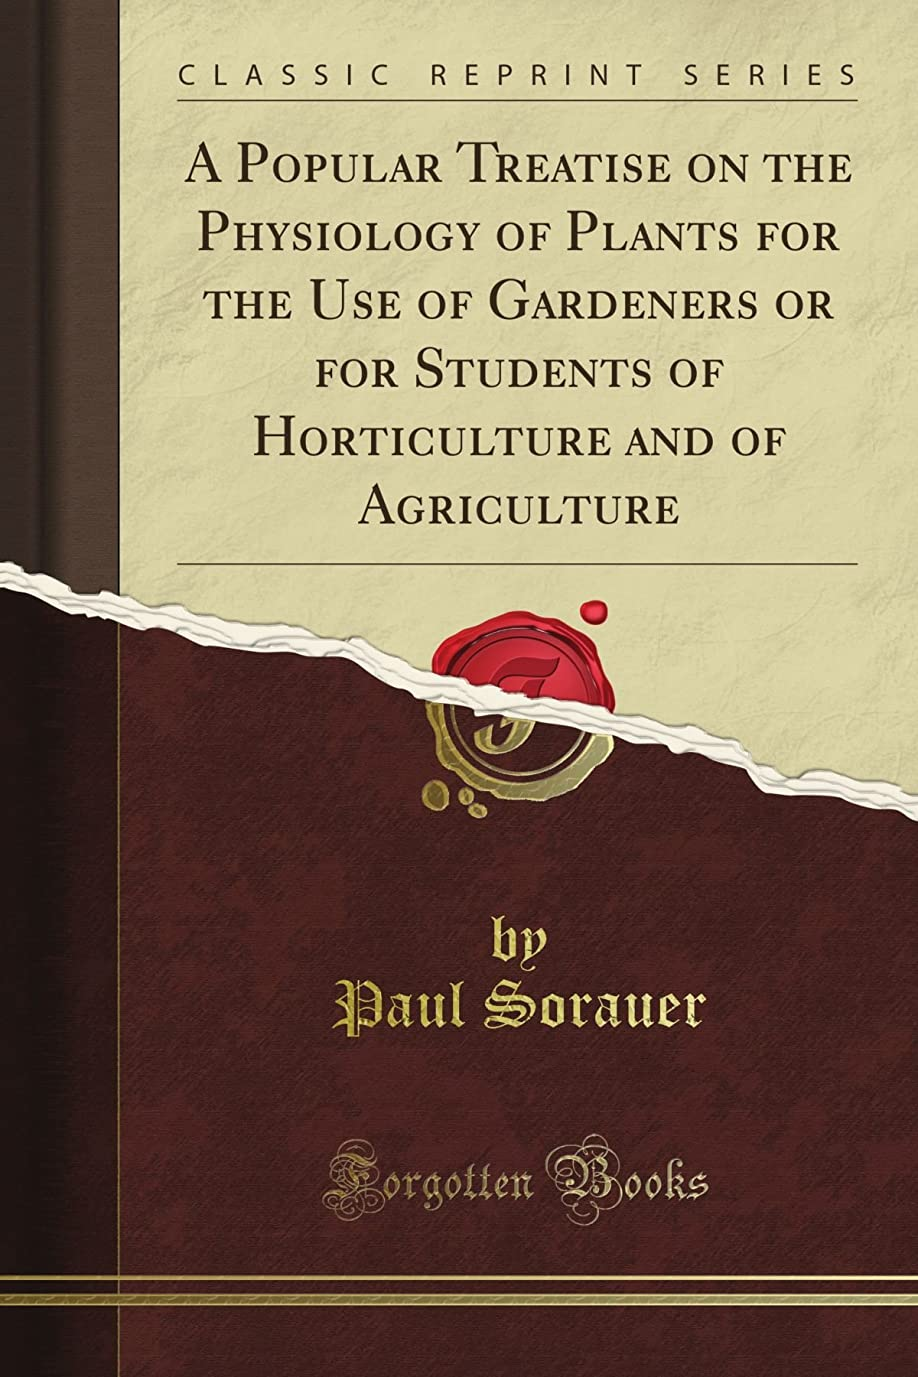 A Popular Treatise on the Physiology of Plants for the Use of Gardeners or for Students of Horticulture and of Agriculture (Classic Reprint)